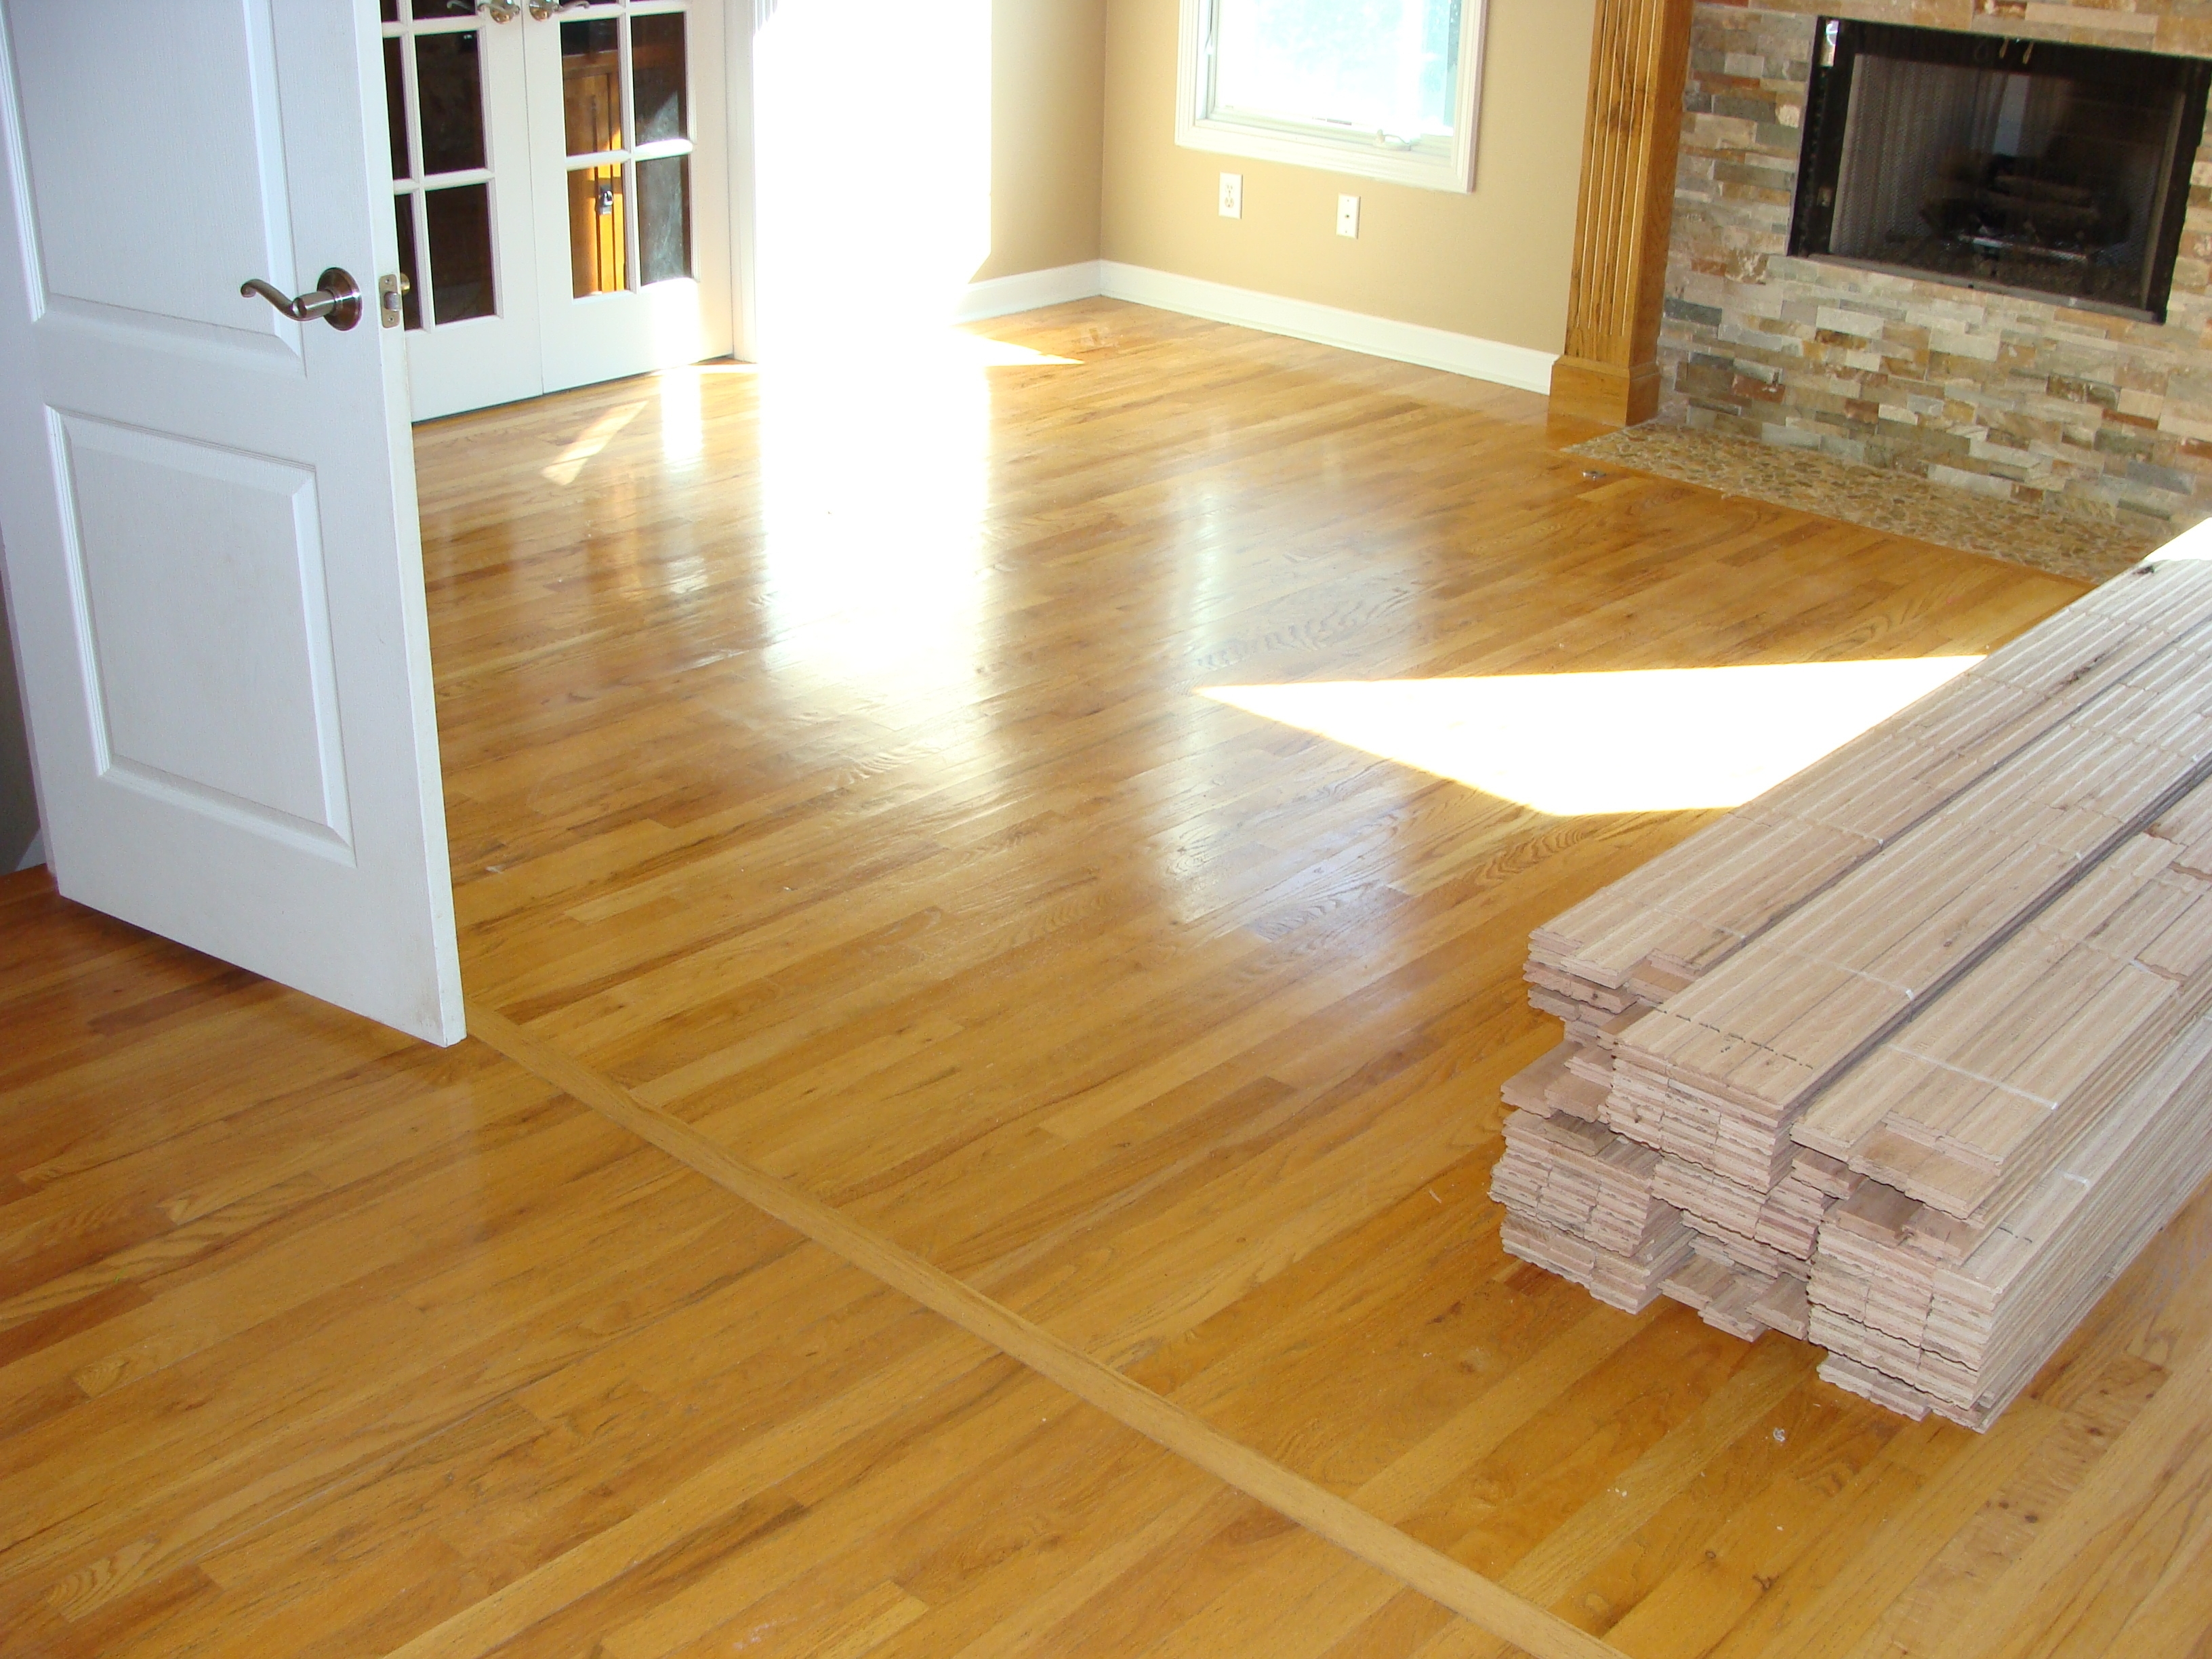 Homebase Wood Flooring Offers